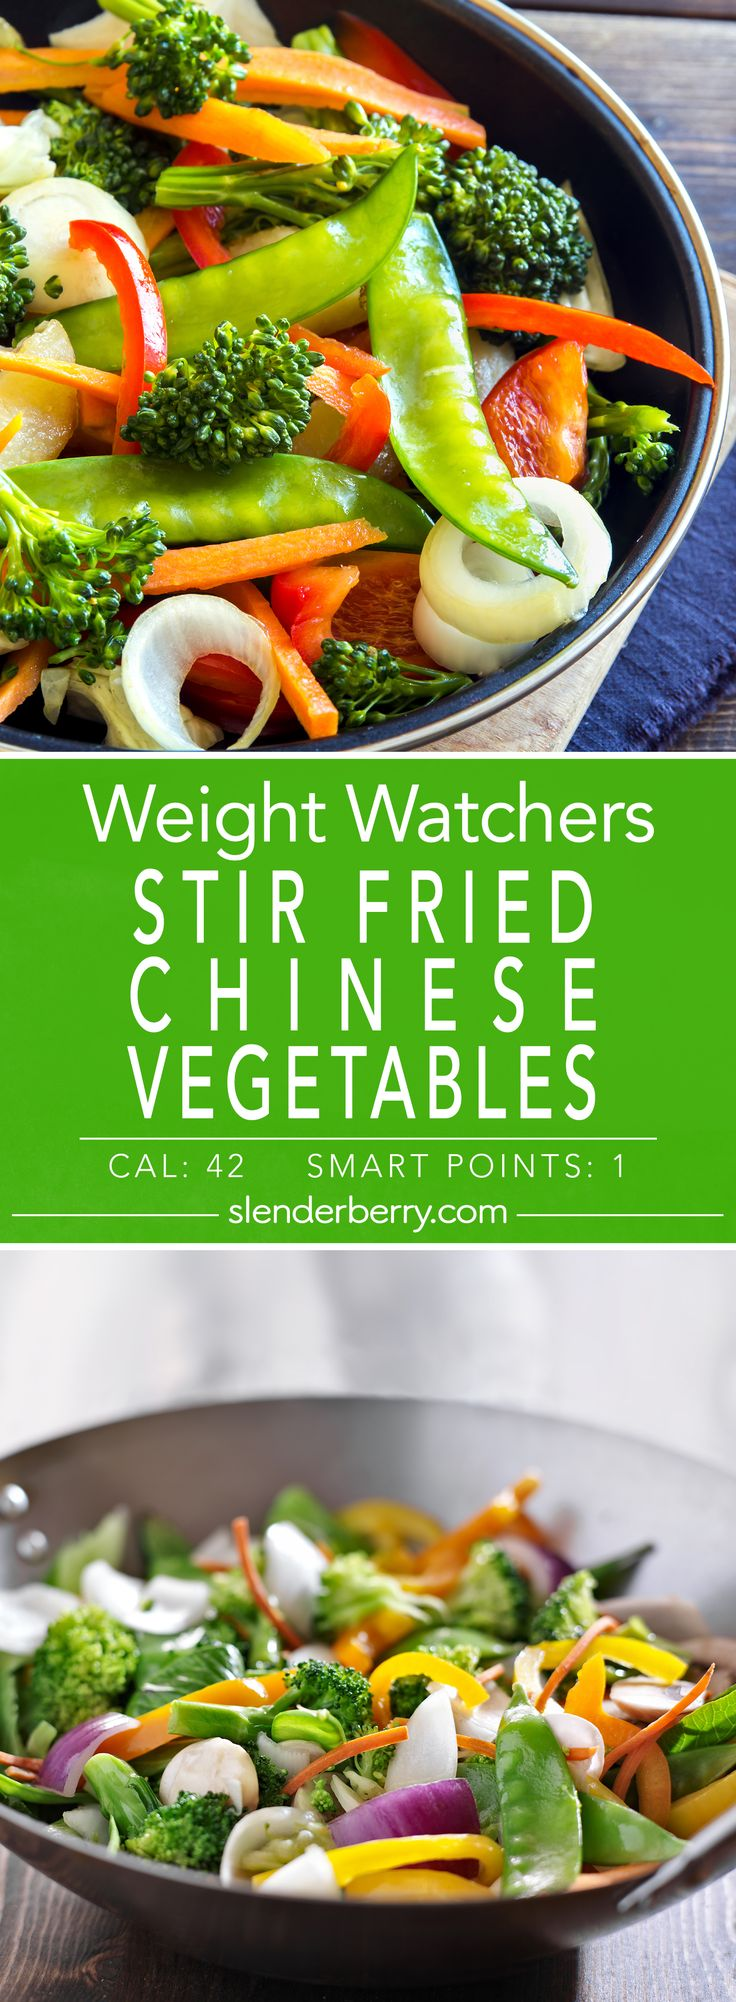 Weight Watchers Skinny Stir Fried Chinese Vegetables Recipe - 1 Smart Point - 42 Calories